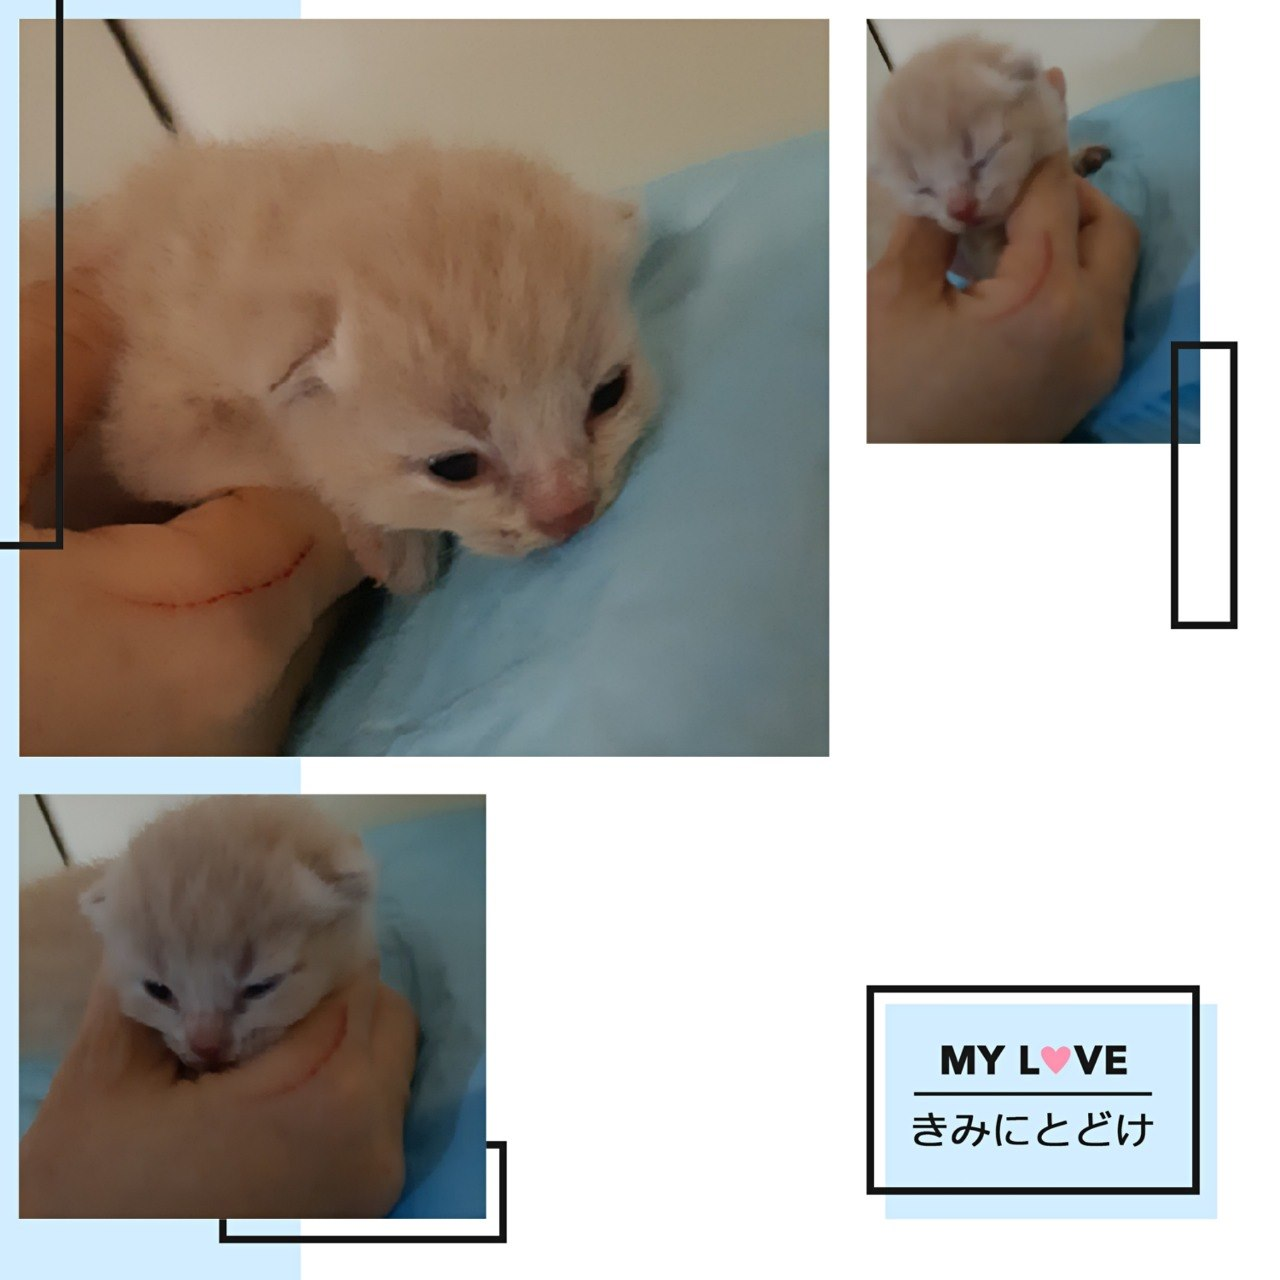 MY L VE きみにとどけ  Cat,Small to medium-sized cats,Mammal,Felidae,Whiskers